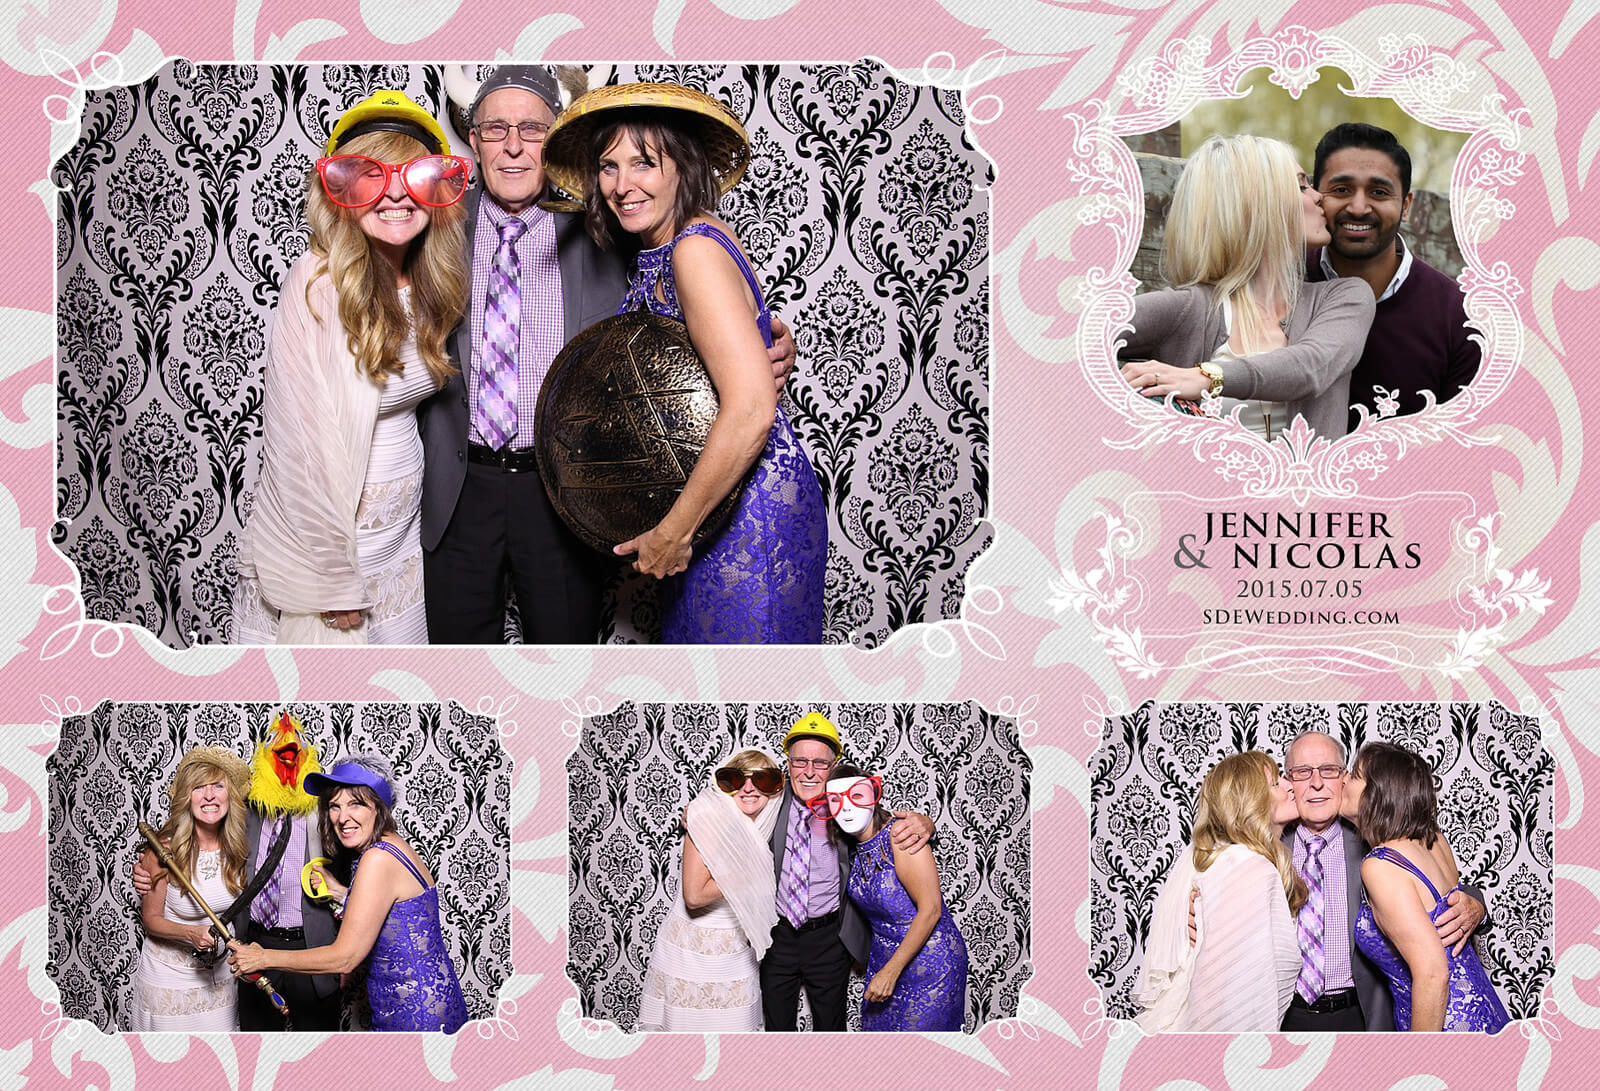 Toronto Liberty Grand Wedding Reception Photo Booth Rental 9